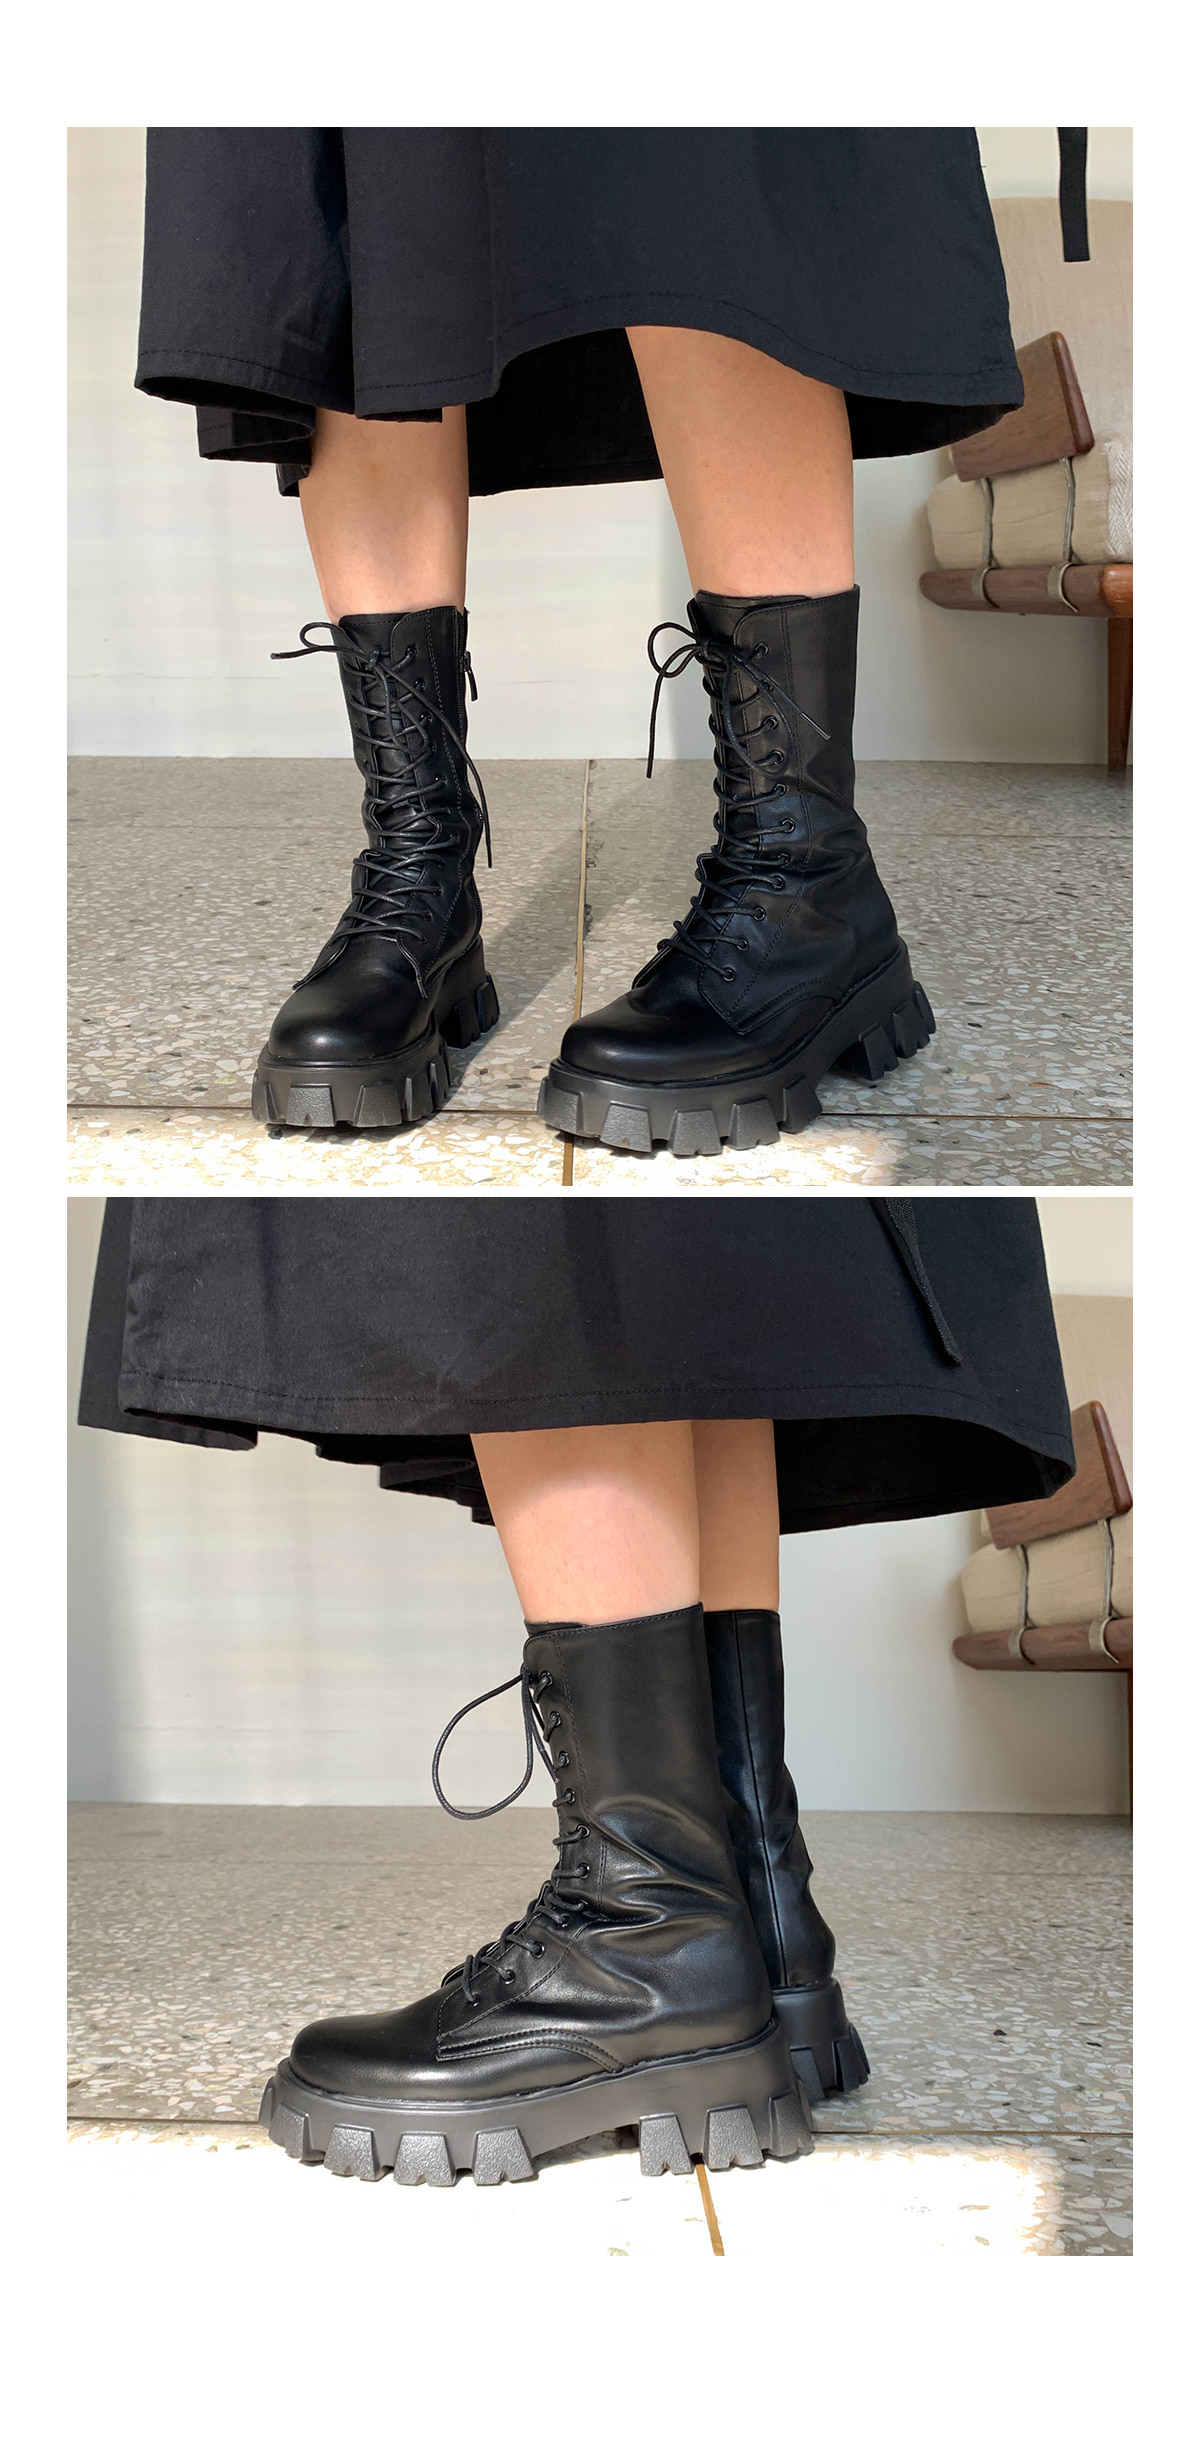 Lace-up Jay Walker Boots